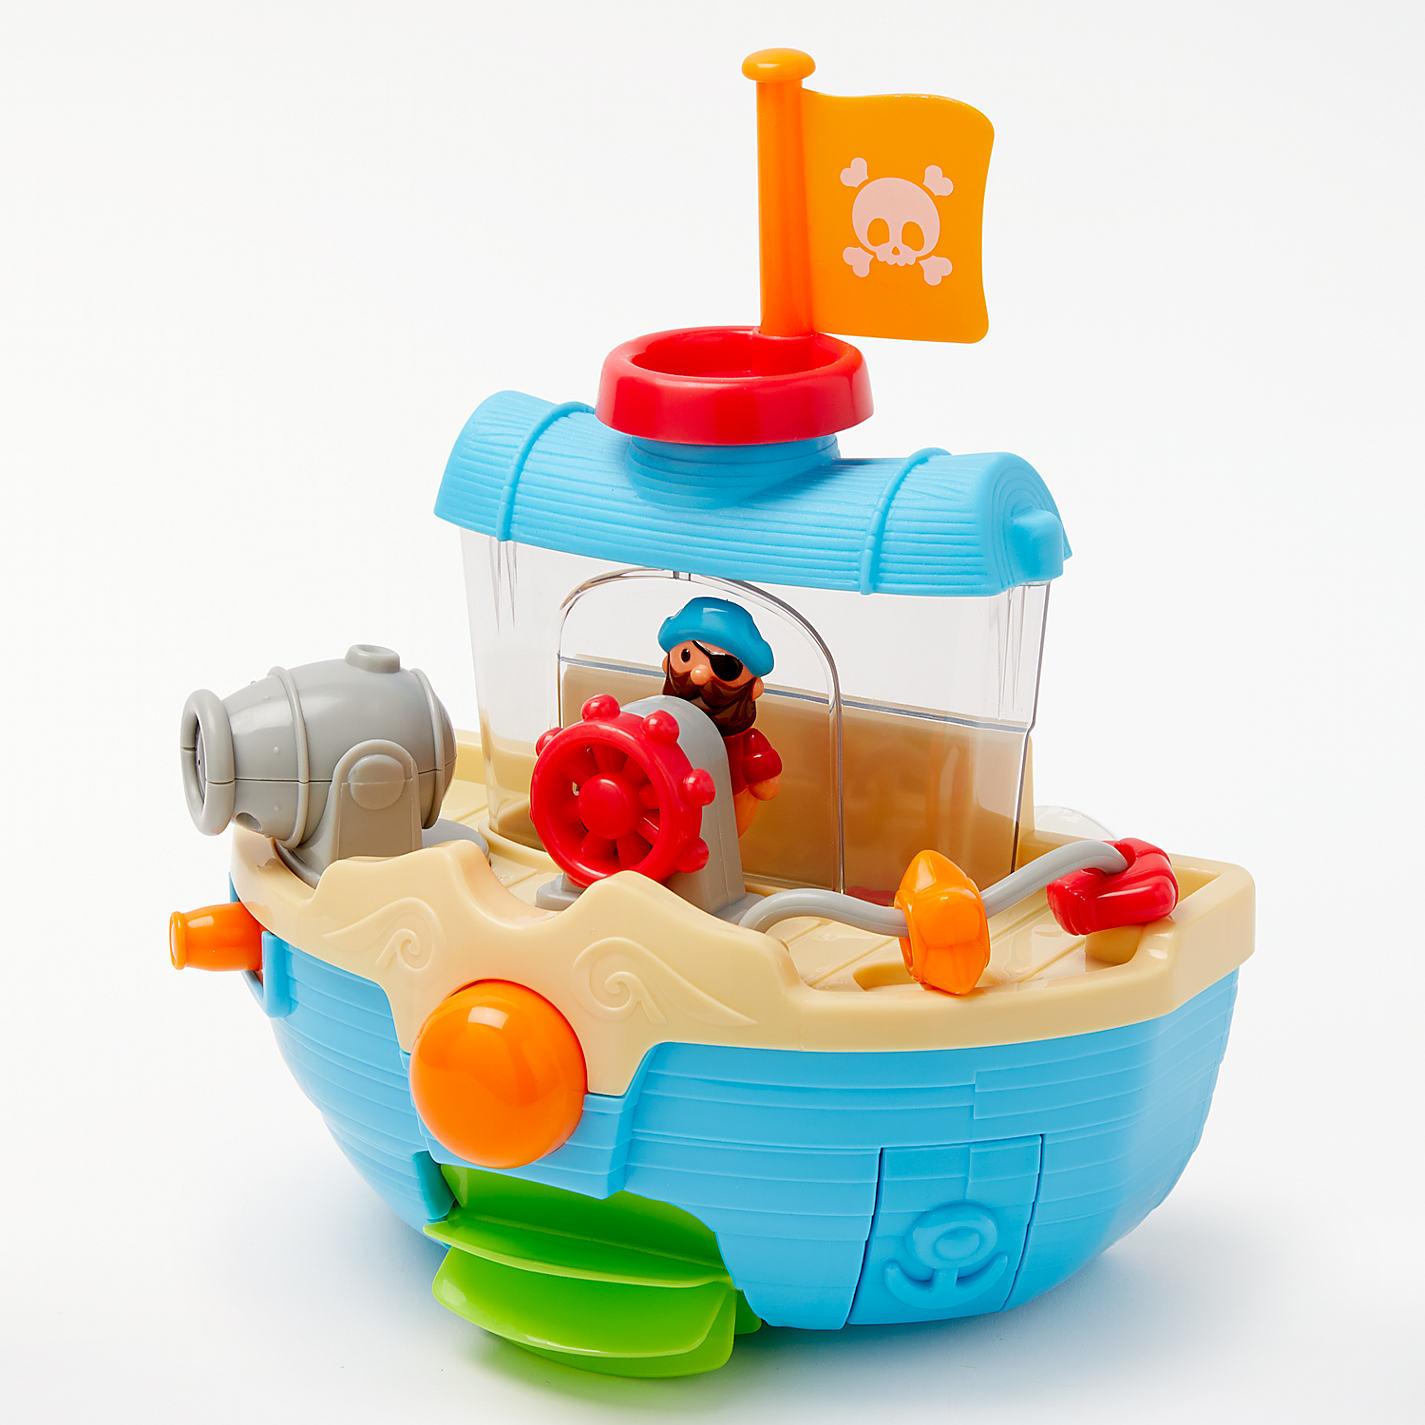 Buy John Lewis Bathtime Water Pirate Boat